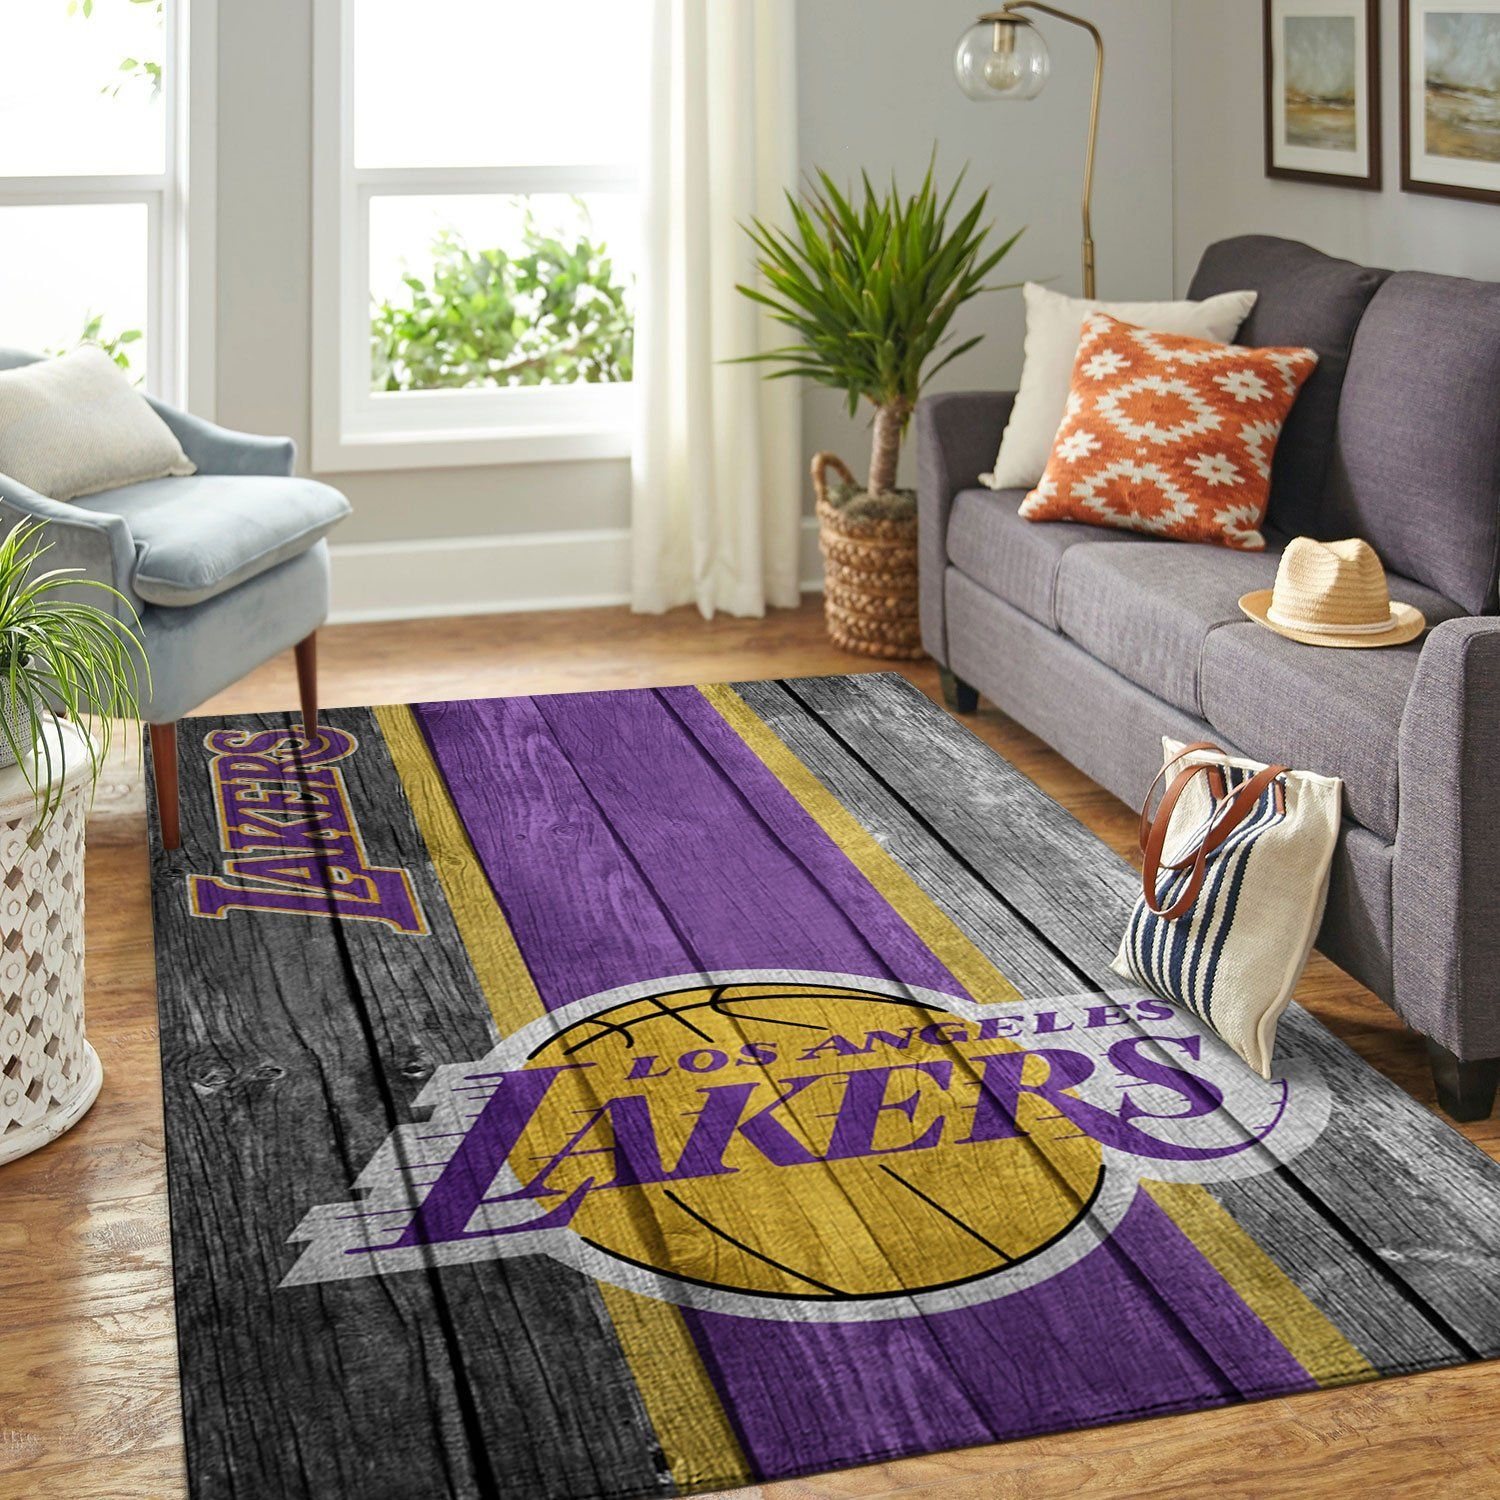 Amazon Los Angeles Lakers Living Room Area No3626 Rug